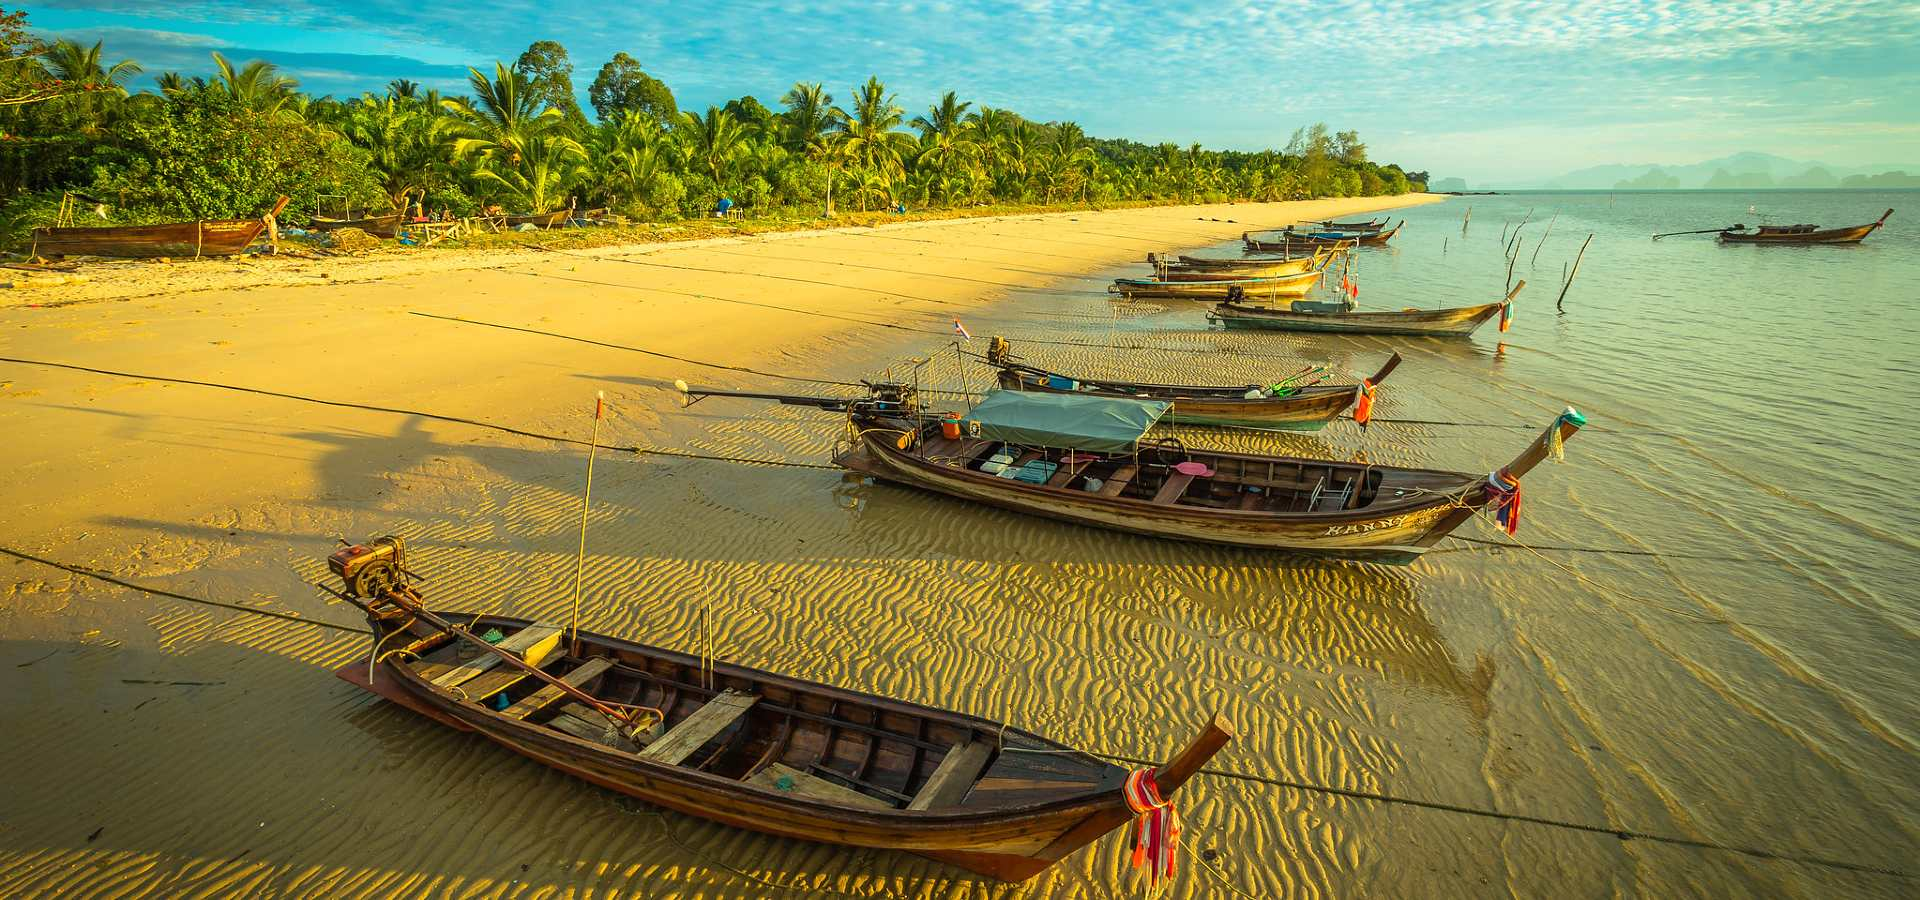 Koh Yao Yai longtail boats at the beach